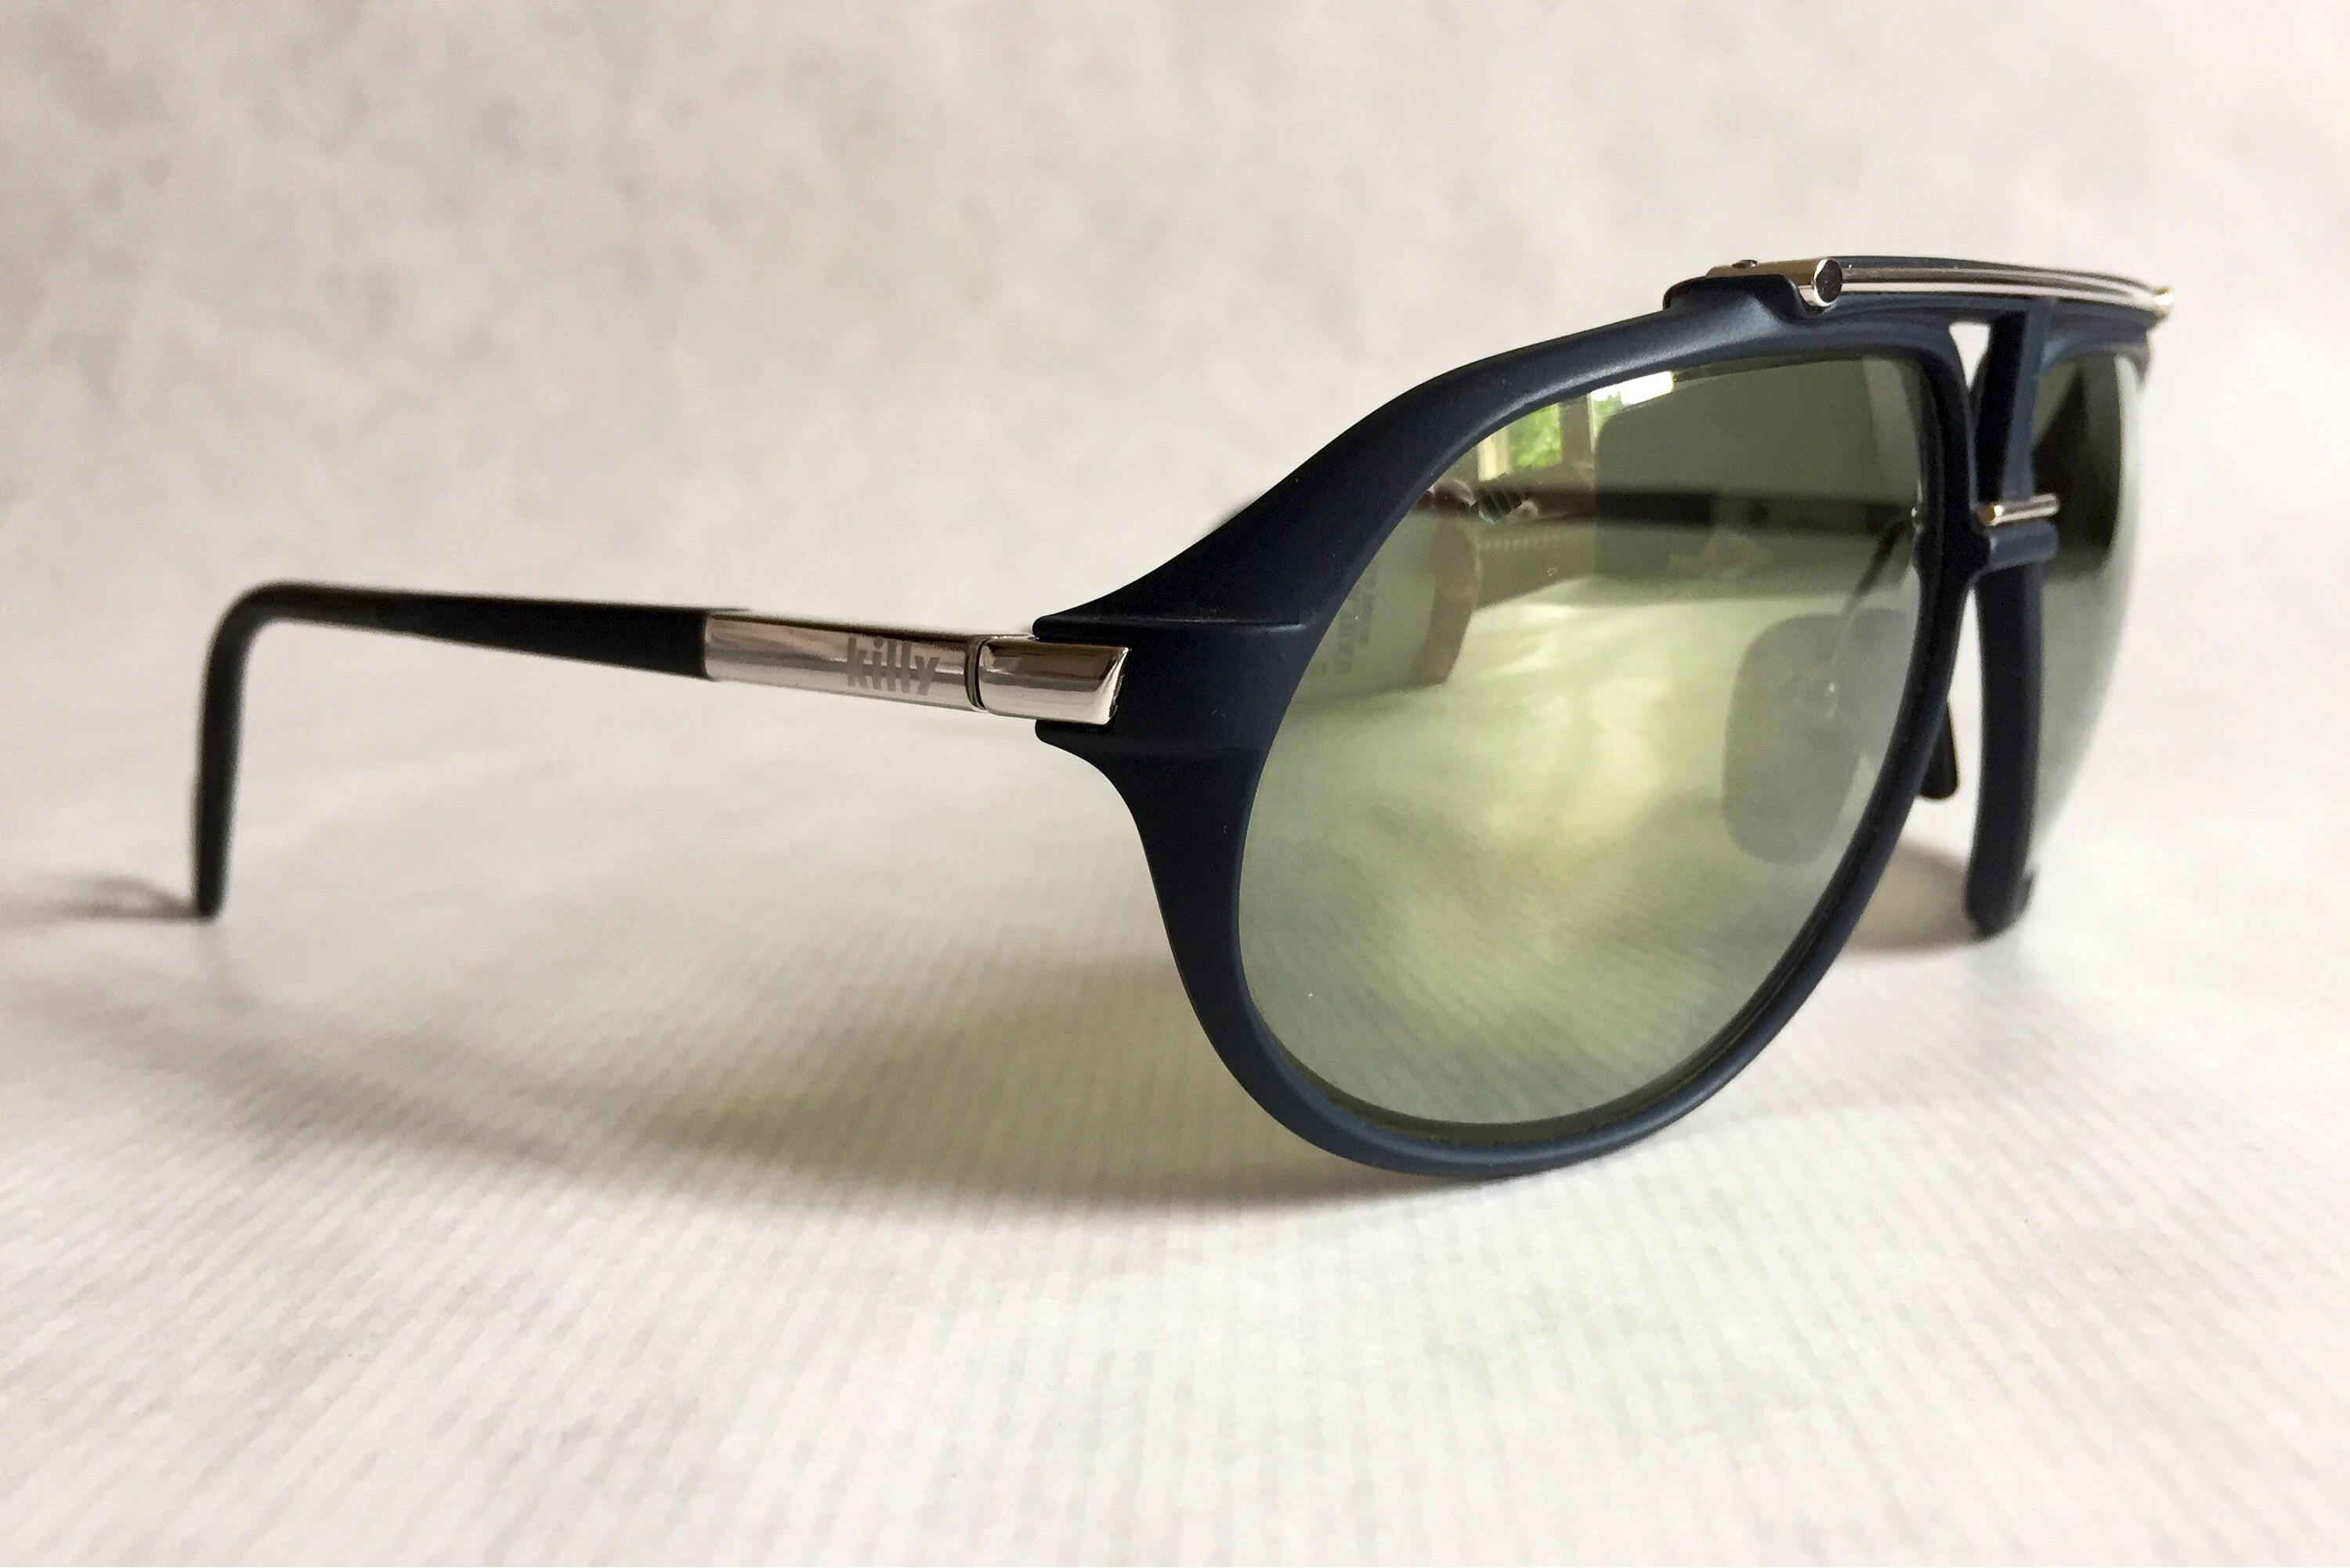 8a7c2af1c554 Killy 469 004 Vintage Sunglasses with Suspended Nosepads - New Unworn  Deadstock